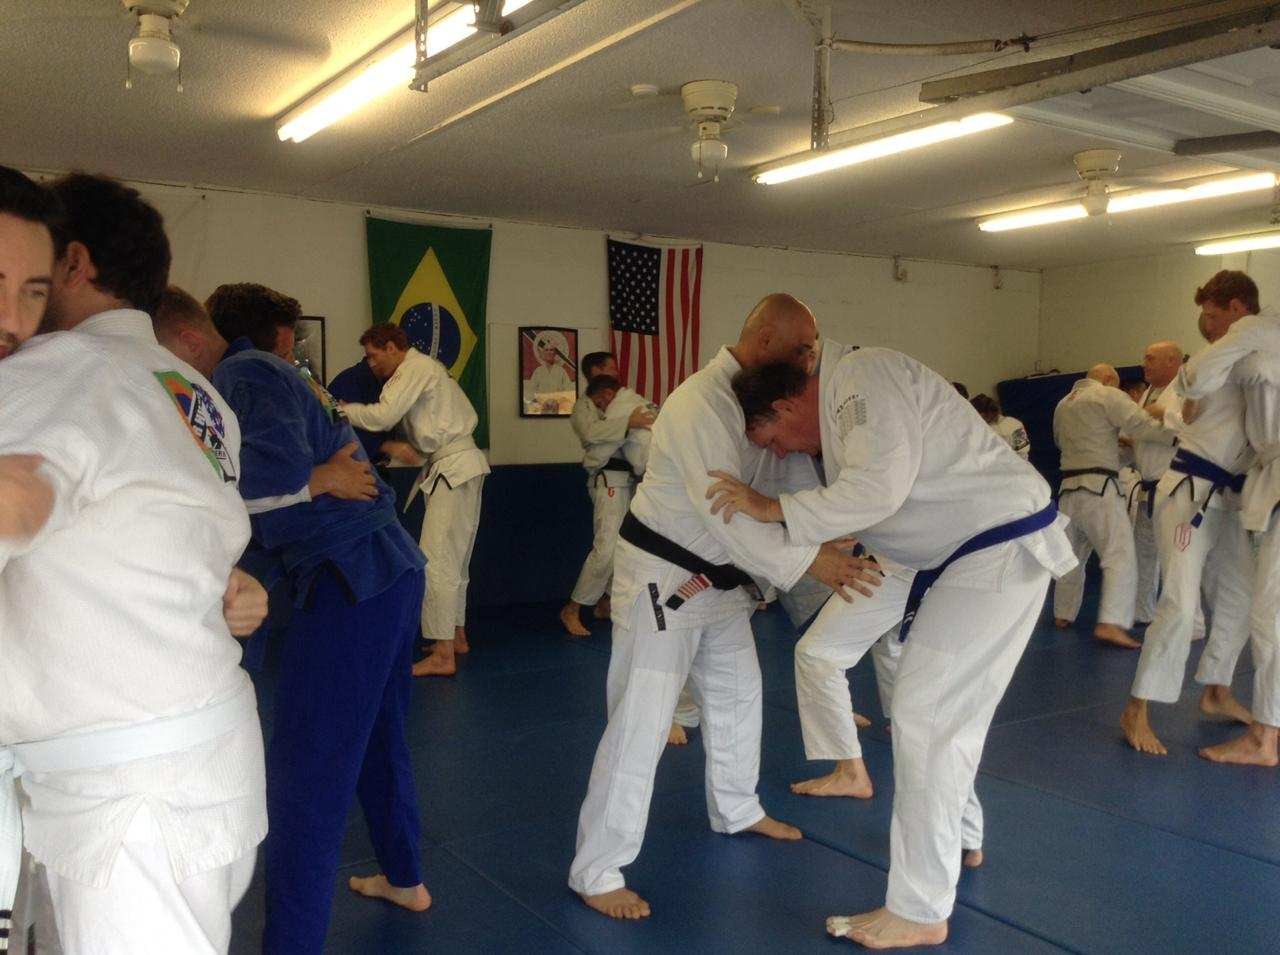 Royler Gracie seminar at Victor Huber BJJ in Atlantic Beach, FL